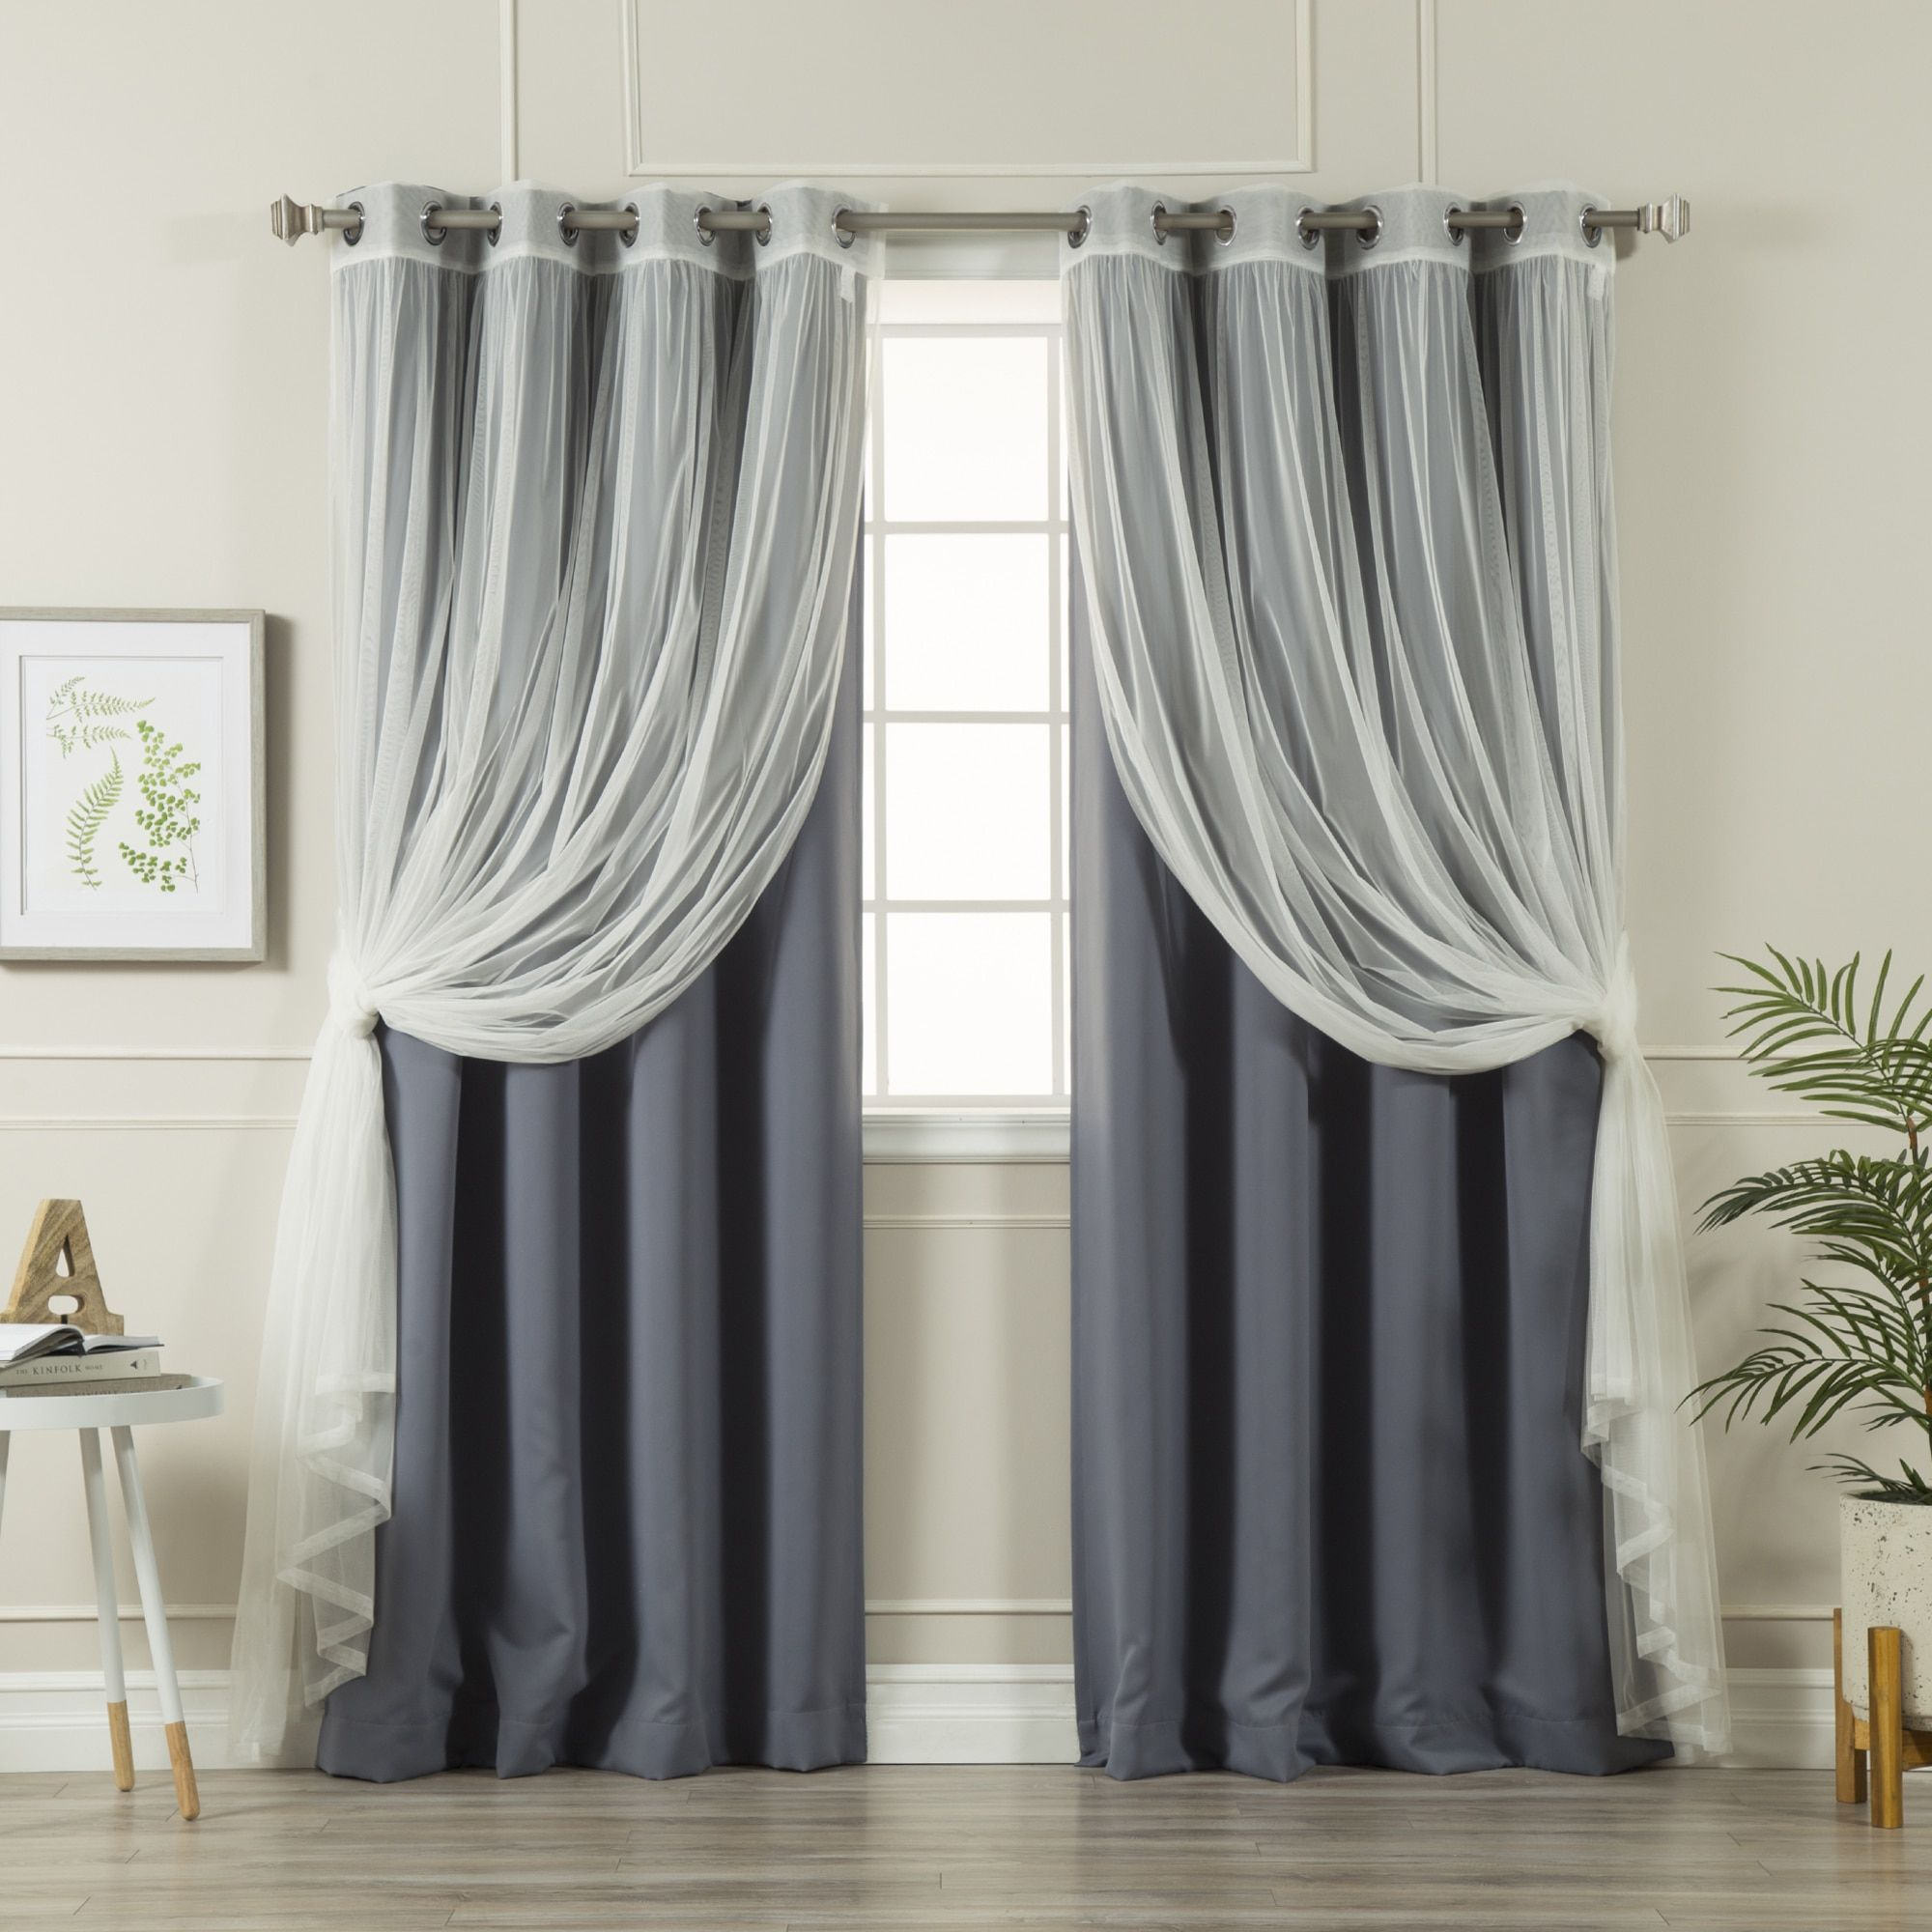 Aurora Home Mix And Match Blackout Tulle Lace Sheer 4 Piece